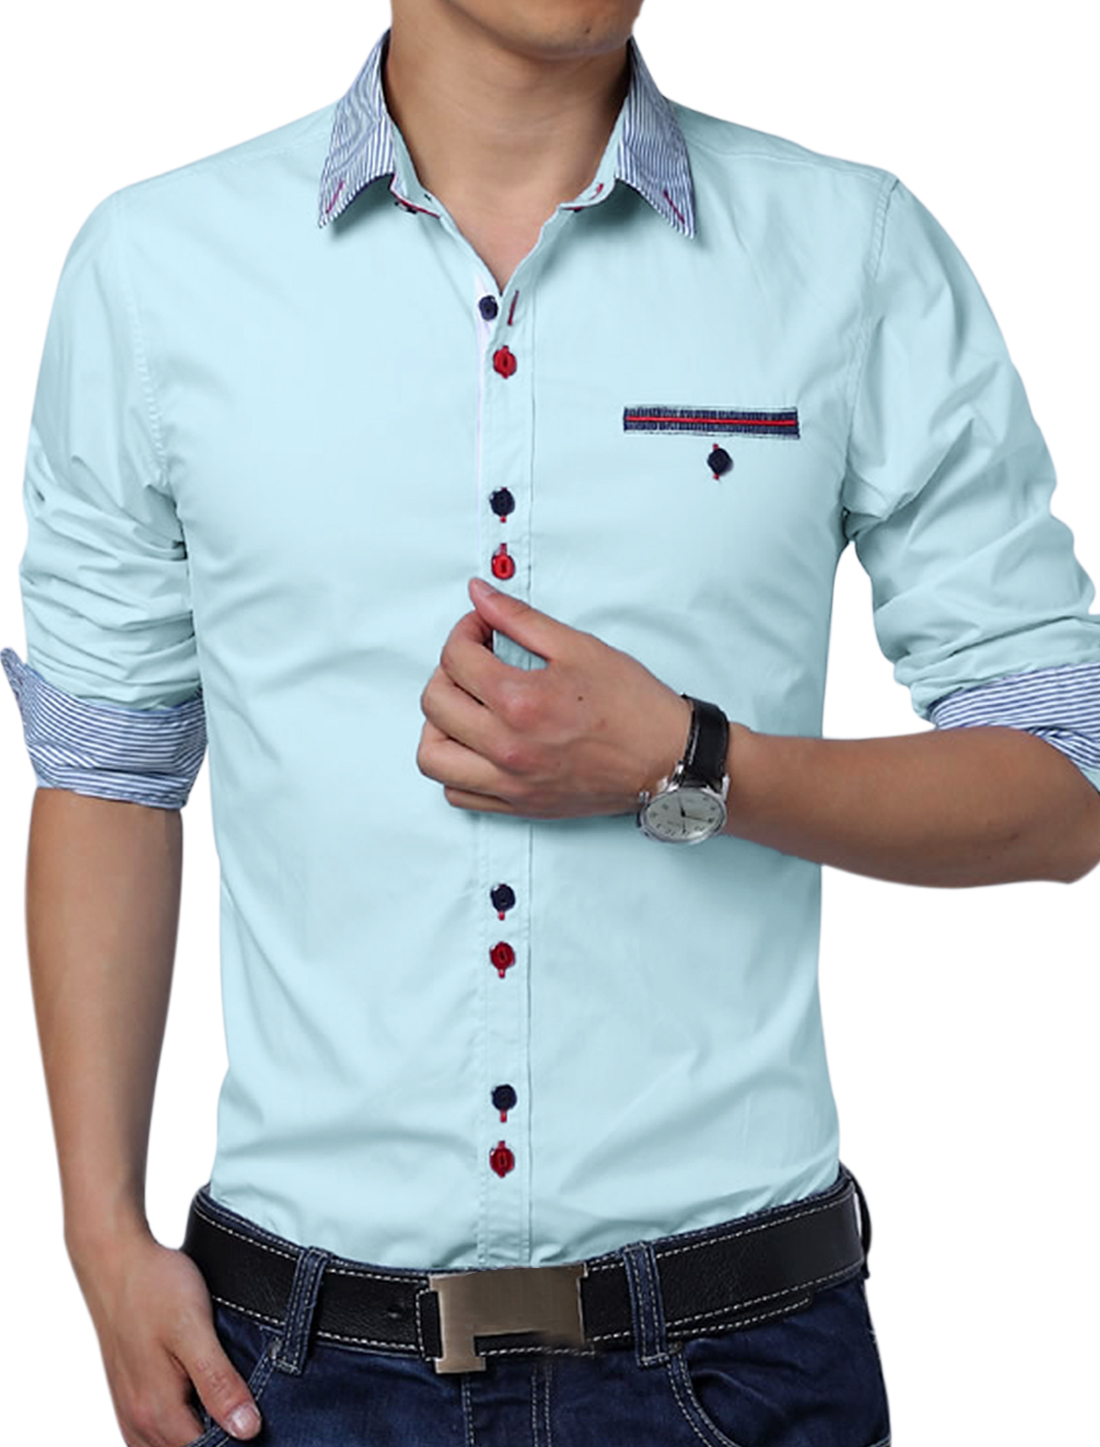 Men Round Hem Embroidery Detail Button Down Top Shirt Baby Blue L